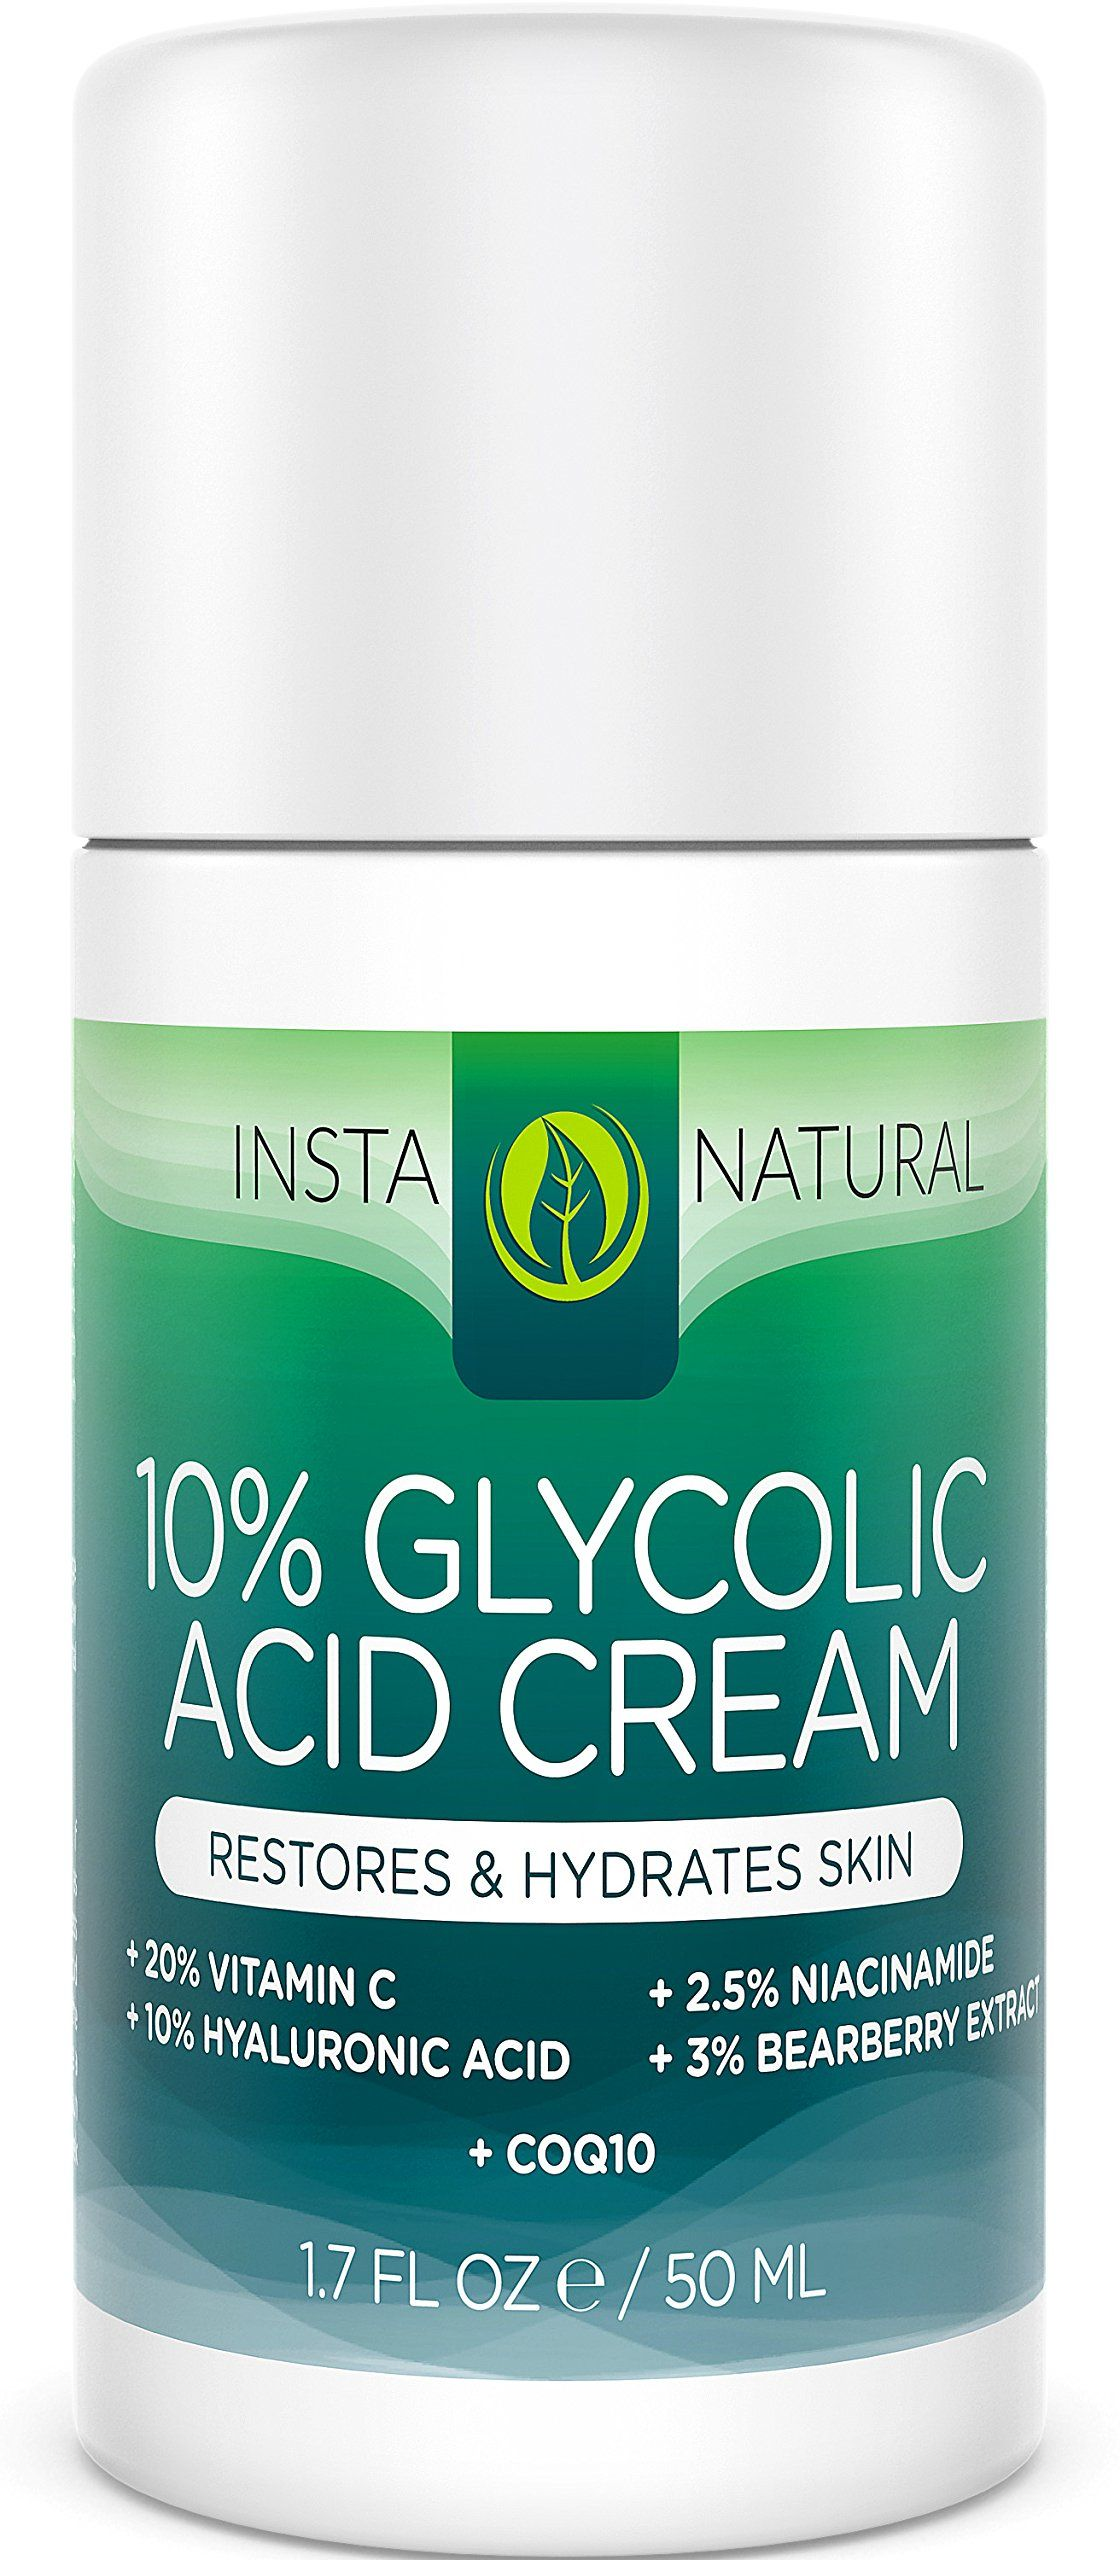 Glycolic acid cream with vitamin c hyaluronic acid